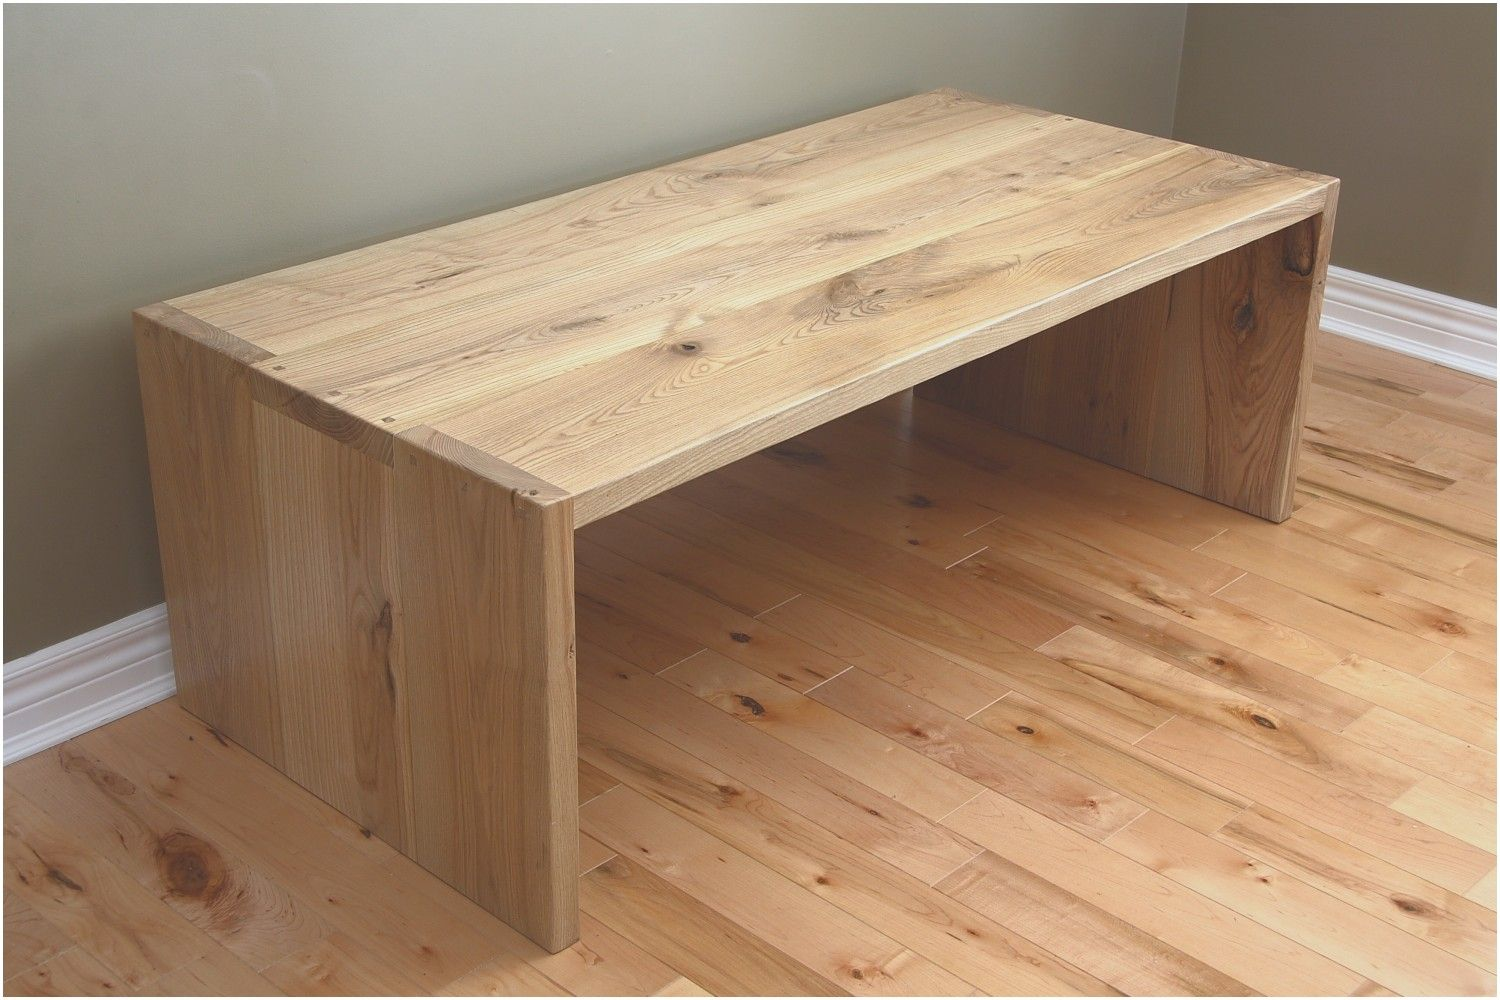 Large Pine Coffee Table Elegant Wooden Furniture Ideas Simple